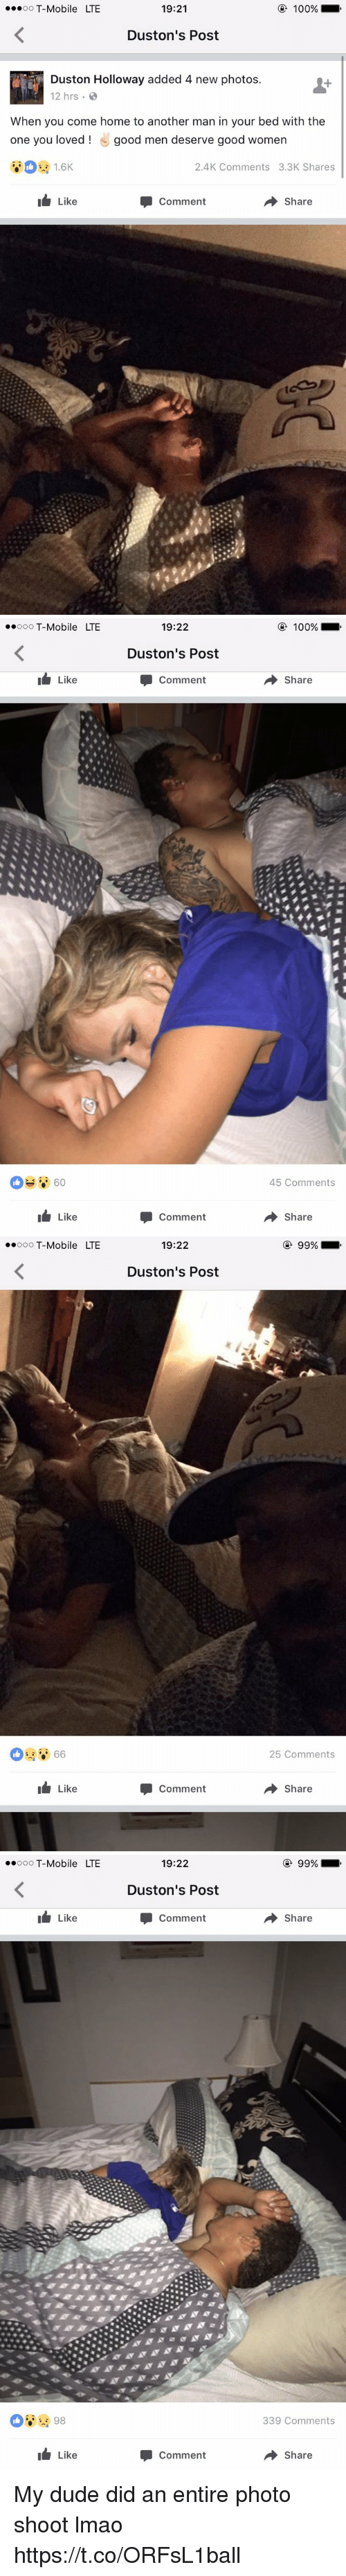 Anaconda, Blackpeopletwitter, and Dude: 100%  OO  T-Mobile LTE  19:21  Duston's Post  Duston Holloway added 4 new photos  12 hrs. B  When you come home to another man in your bed with the  one you loved good men deserve good women  2.4K Comments 3.3K Shares  Like  Share  Comment   ooooo T-Mobile LTE  It Like  Like  19:22  Duston's Post  Comment  Comment  100%  Share  45 Comments  Share   ooooo T-Mobile LTE  66  It Like  19:22  Duston's Post  Comment  99%  25 Comments  Share   ooooo T-Mobile LTE  Like  98  Like  19:22  Duston's Post  Comment  Comment  99%  Share  339 Comments  Share My dude did an entire photo shoot lmao https://t.co/ORFsL1ball